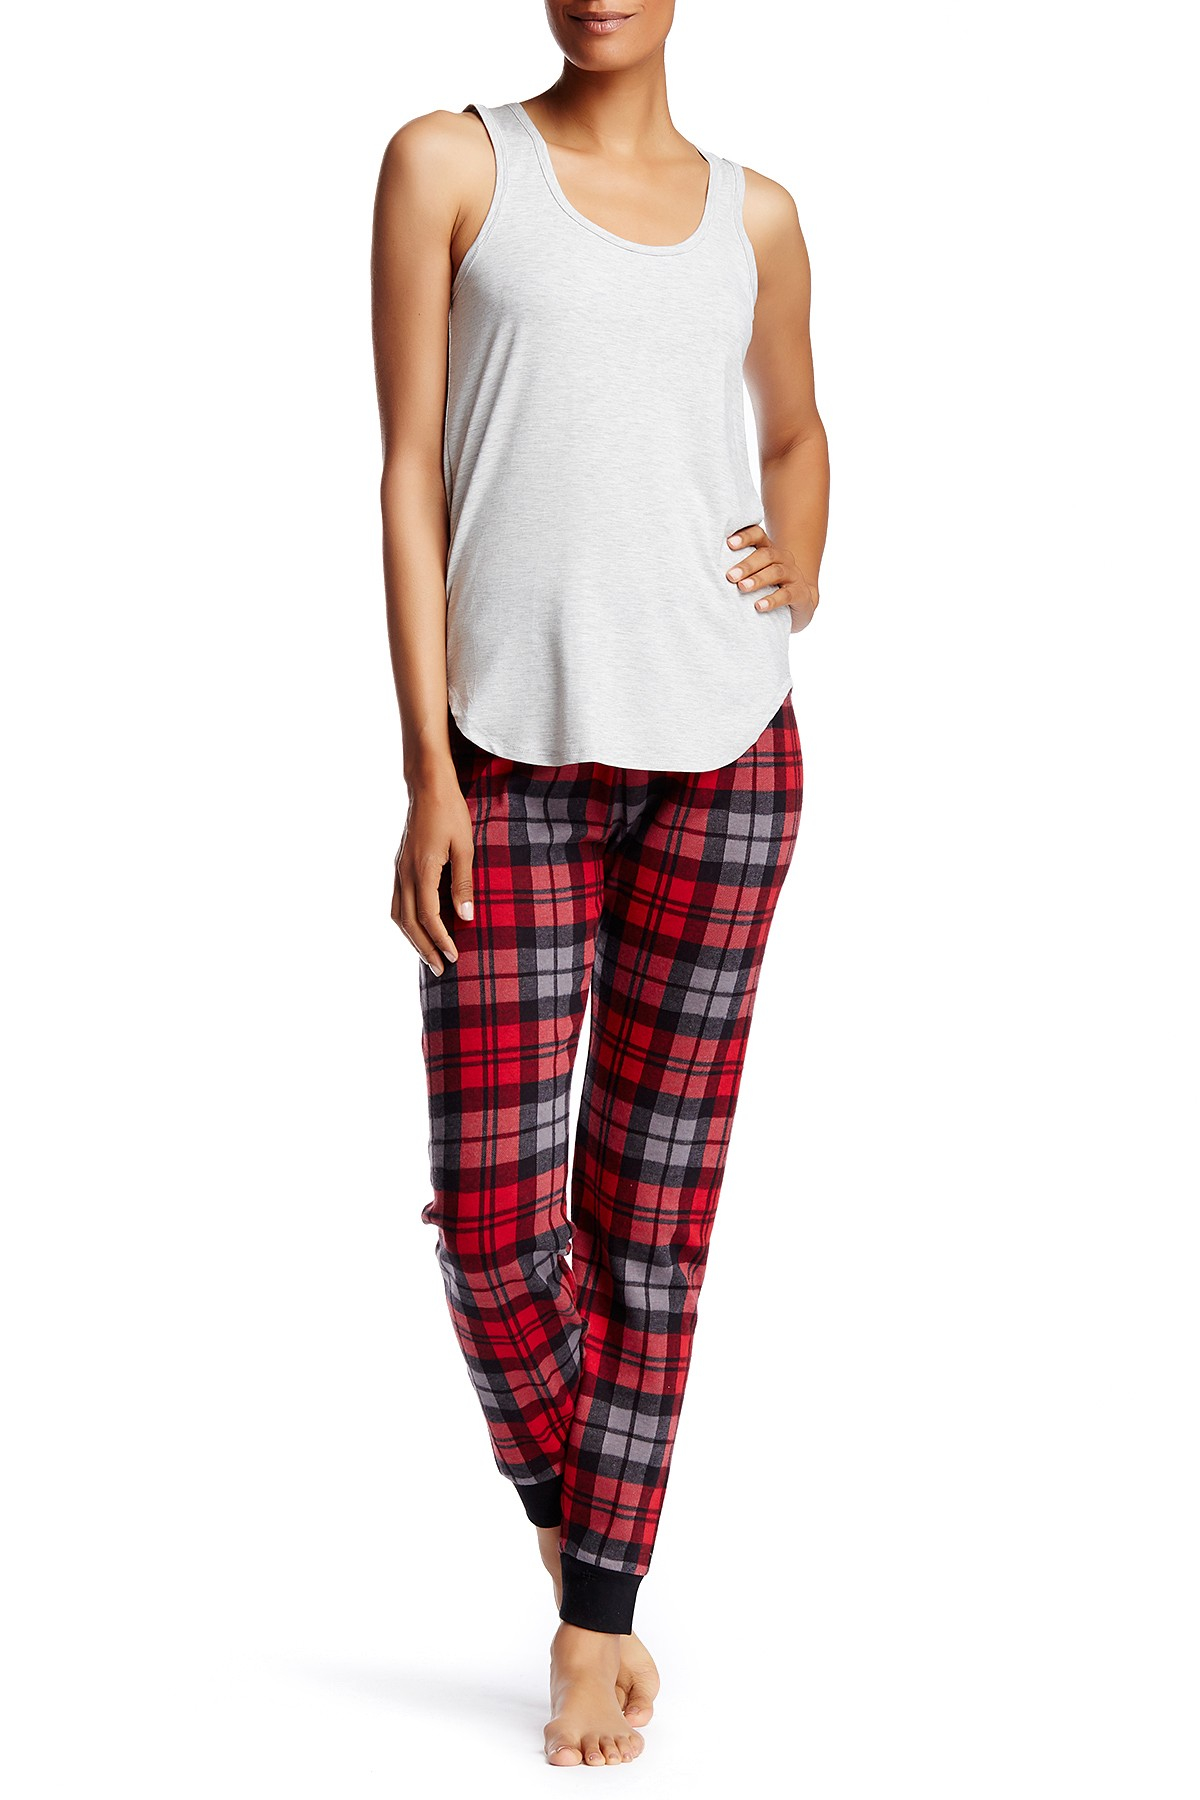 Lyst - UGG Whitney Lounge Pant in Red 3343e737f